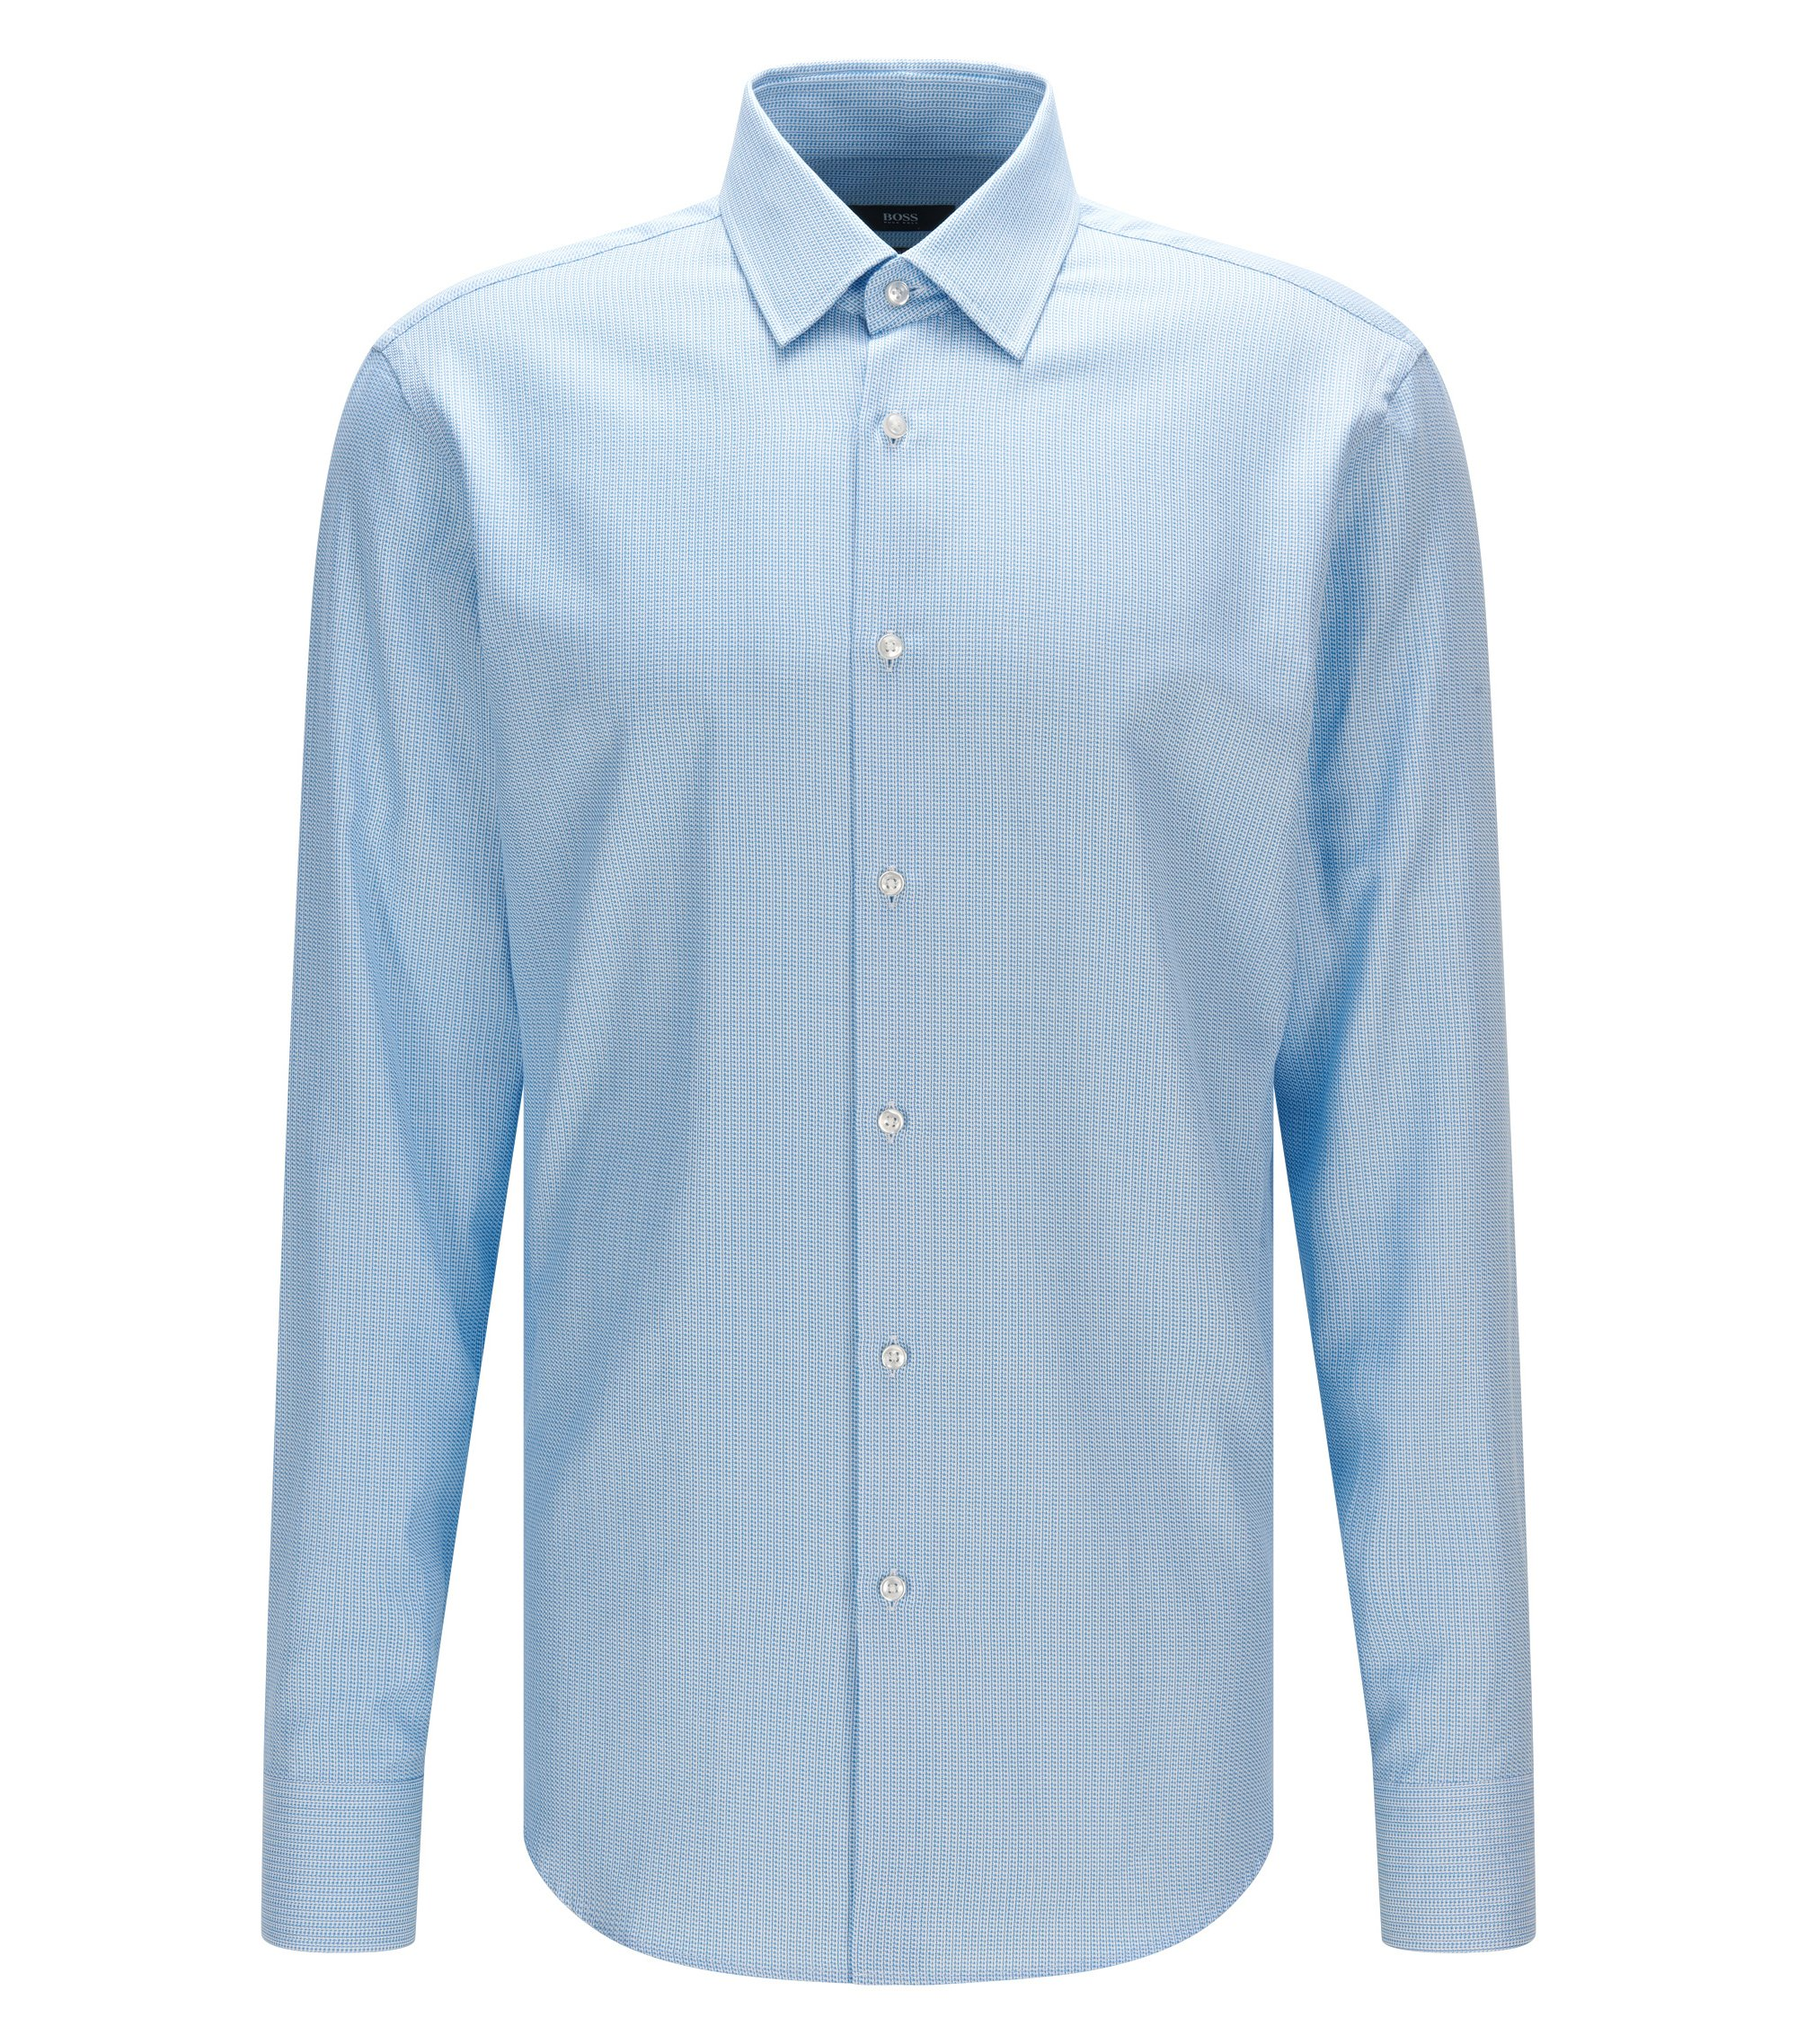 Regular-fit shirt in micro-structure cotton, Turquoise